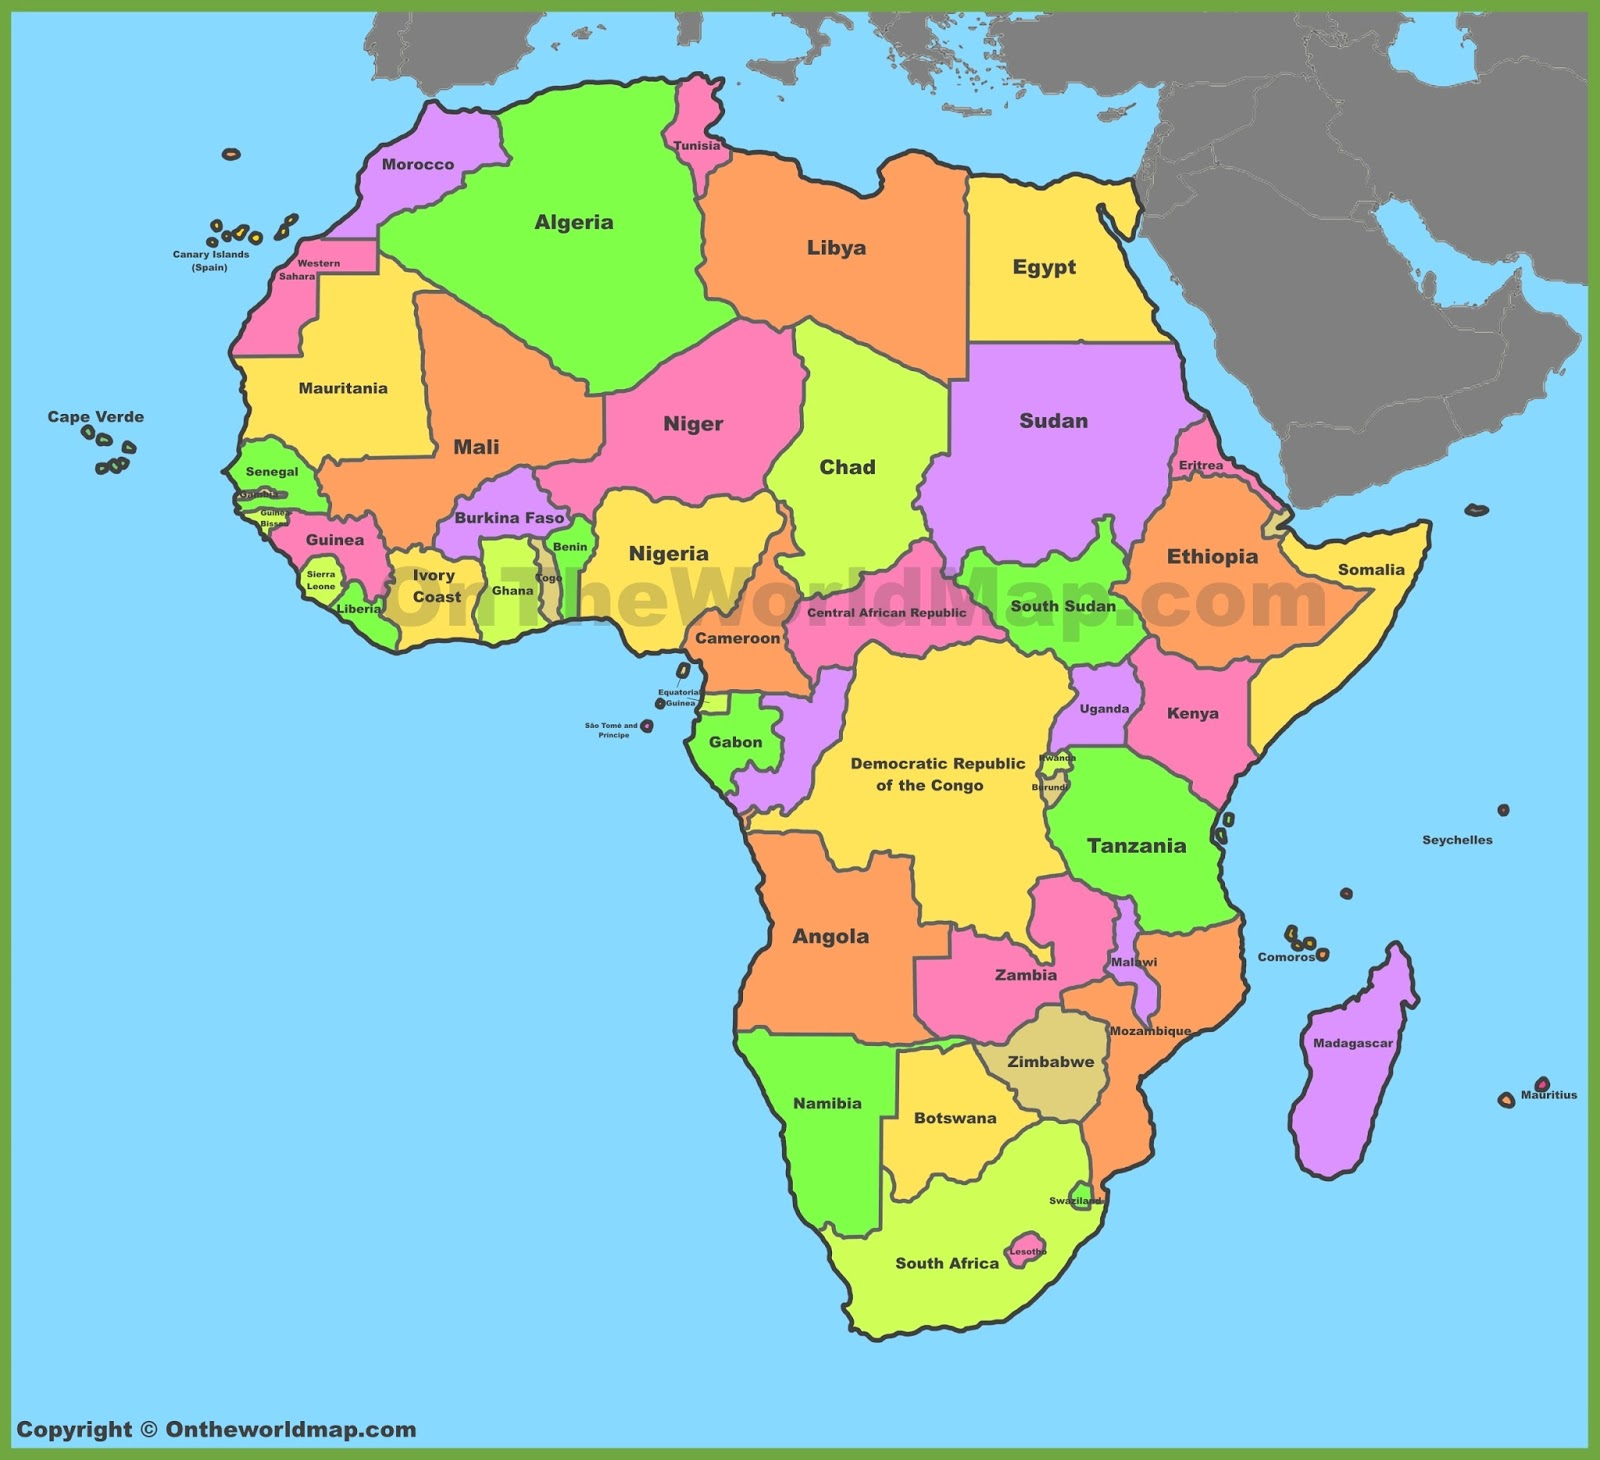 Social science africa political map africa political map gumiabroncs Choice Image